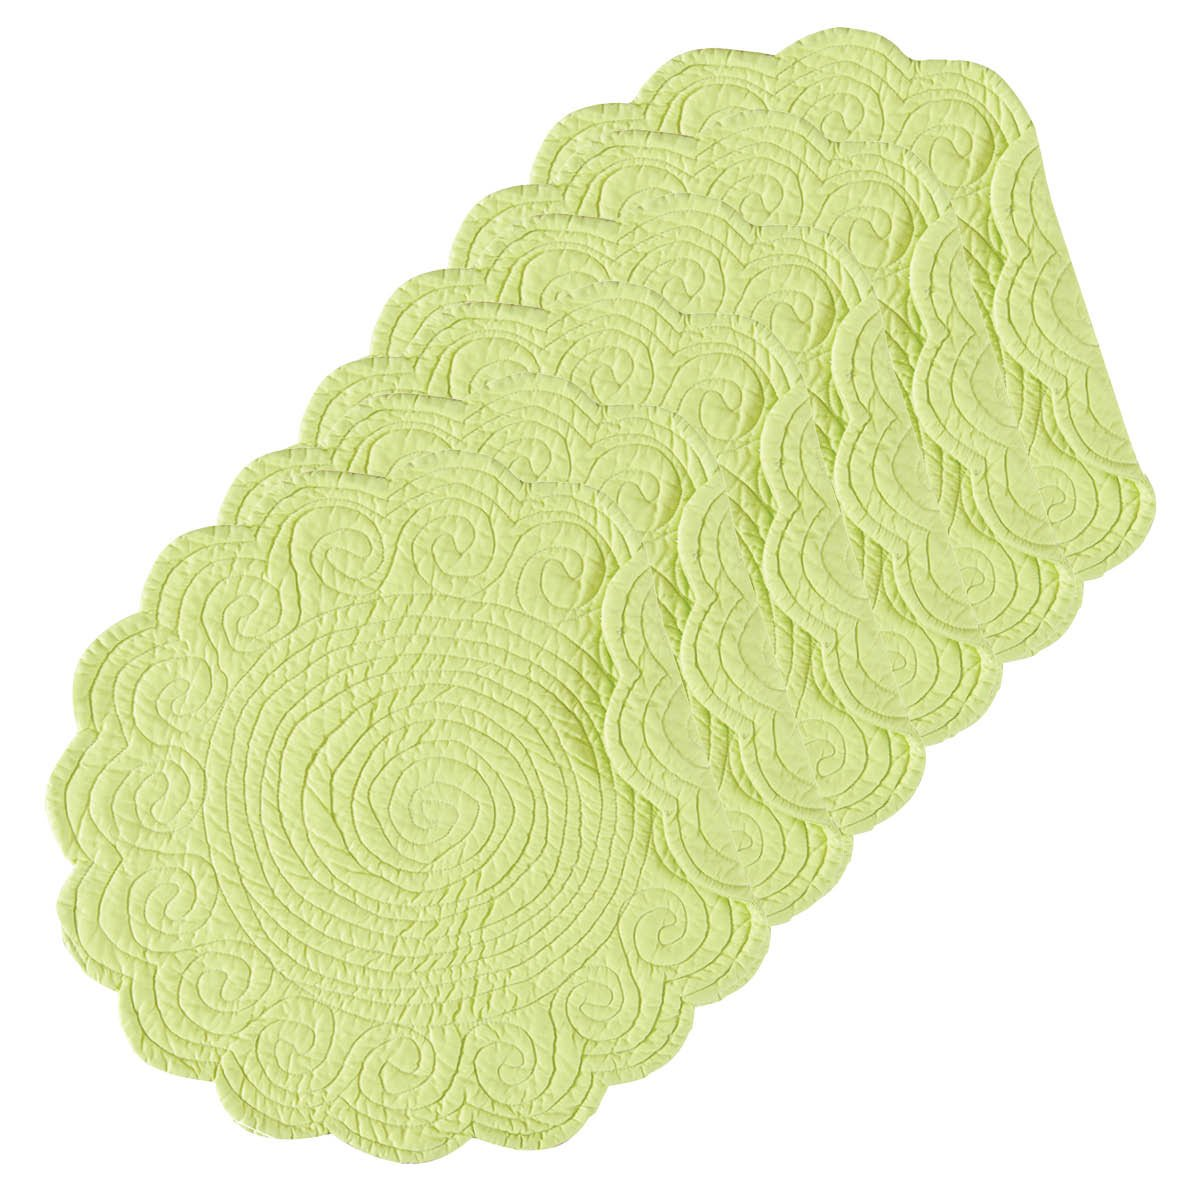 (Round Placemat Set of 6, Lime Green) - Lime Green 43cm Round Quilted Placemat Set of 6 Round Placemat Set of 6 ライムグリーン B075VNV1KY